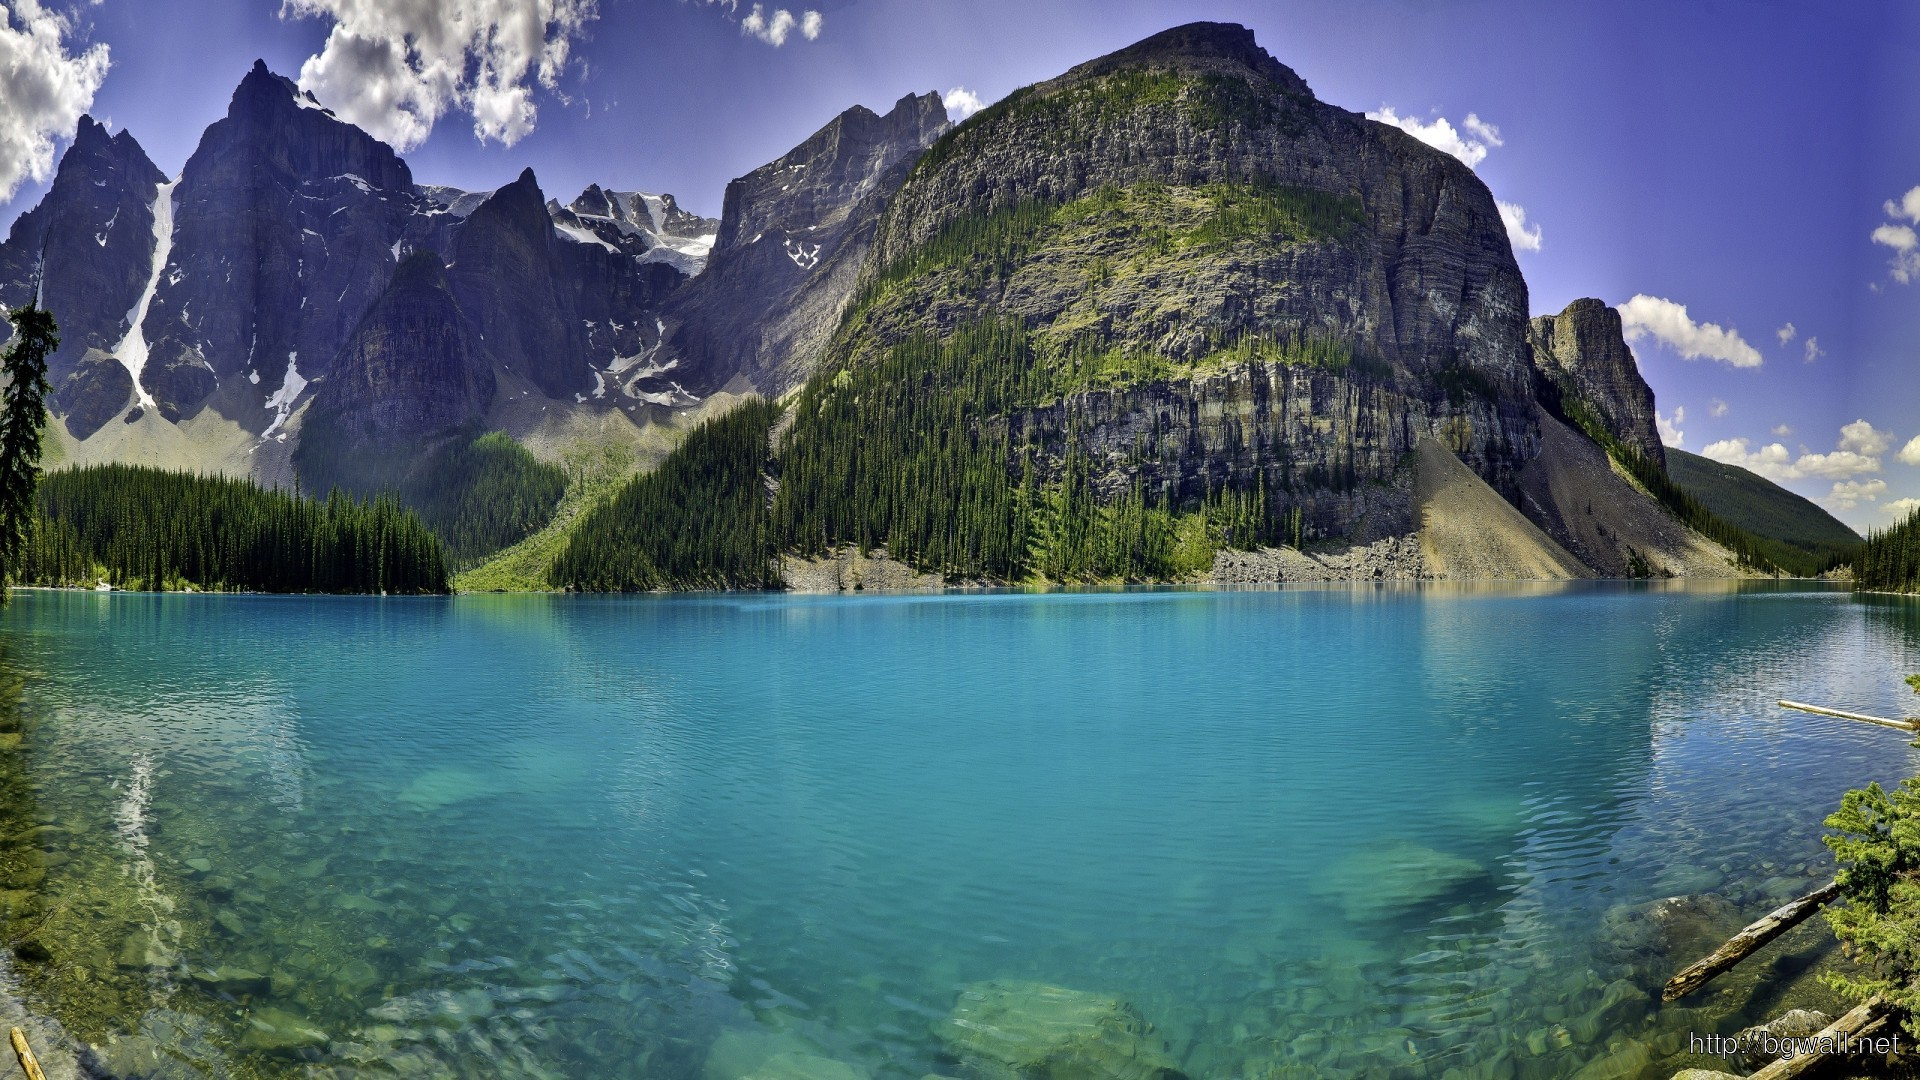 Moraine lake canada wallpaper 4180 background wallpaper hd for Home wallpaper canada